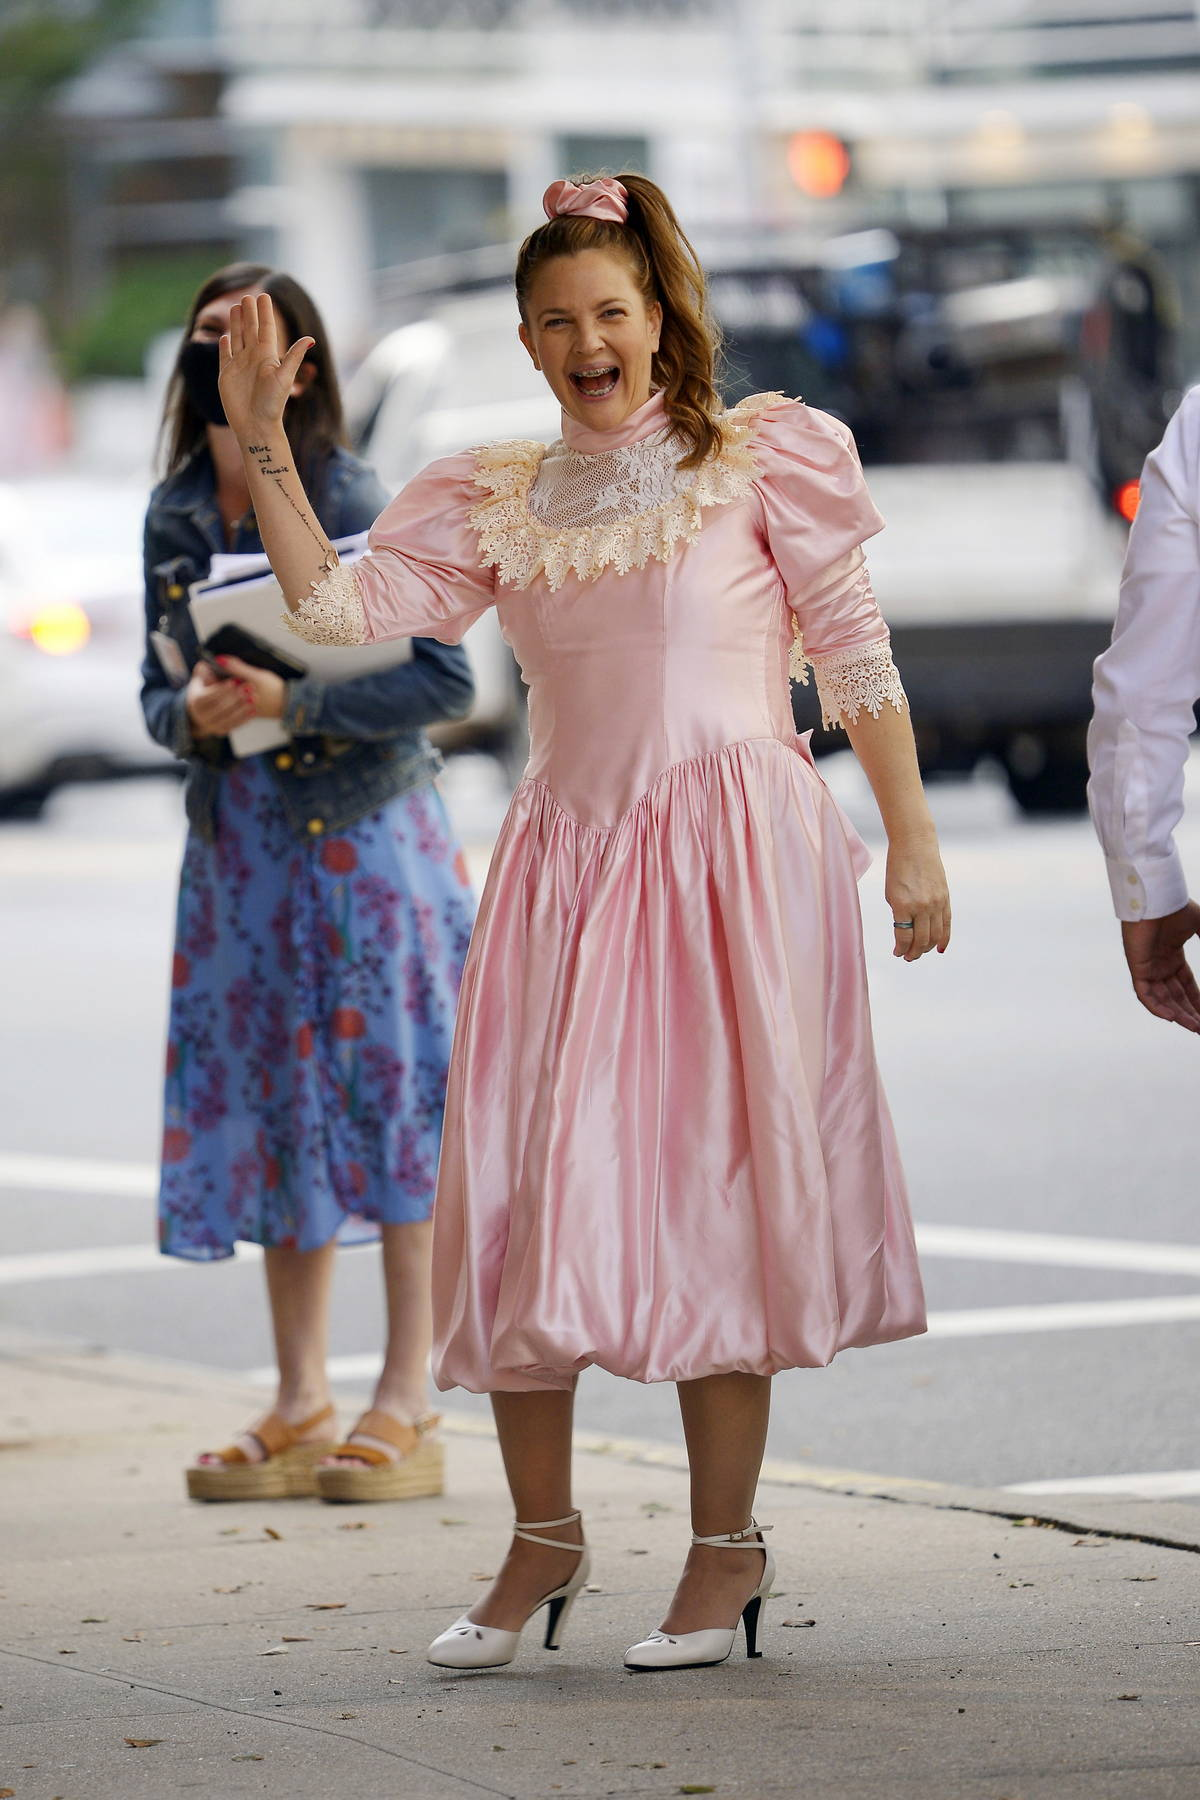 Drew Barrymore seen wearing a Cinderella dress and metal braces while filming an unknown project in New York